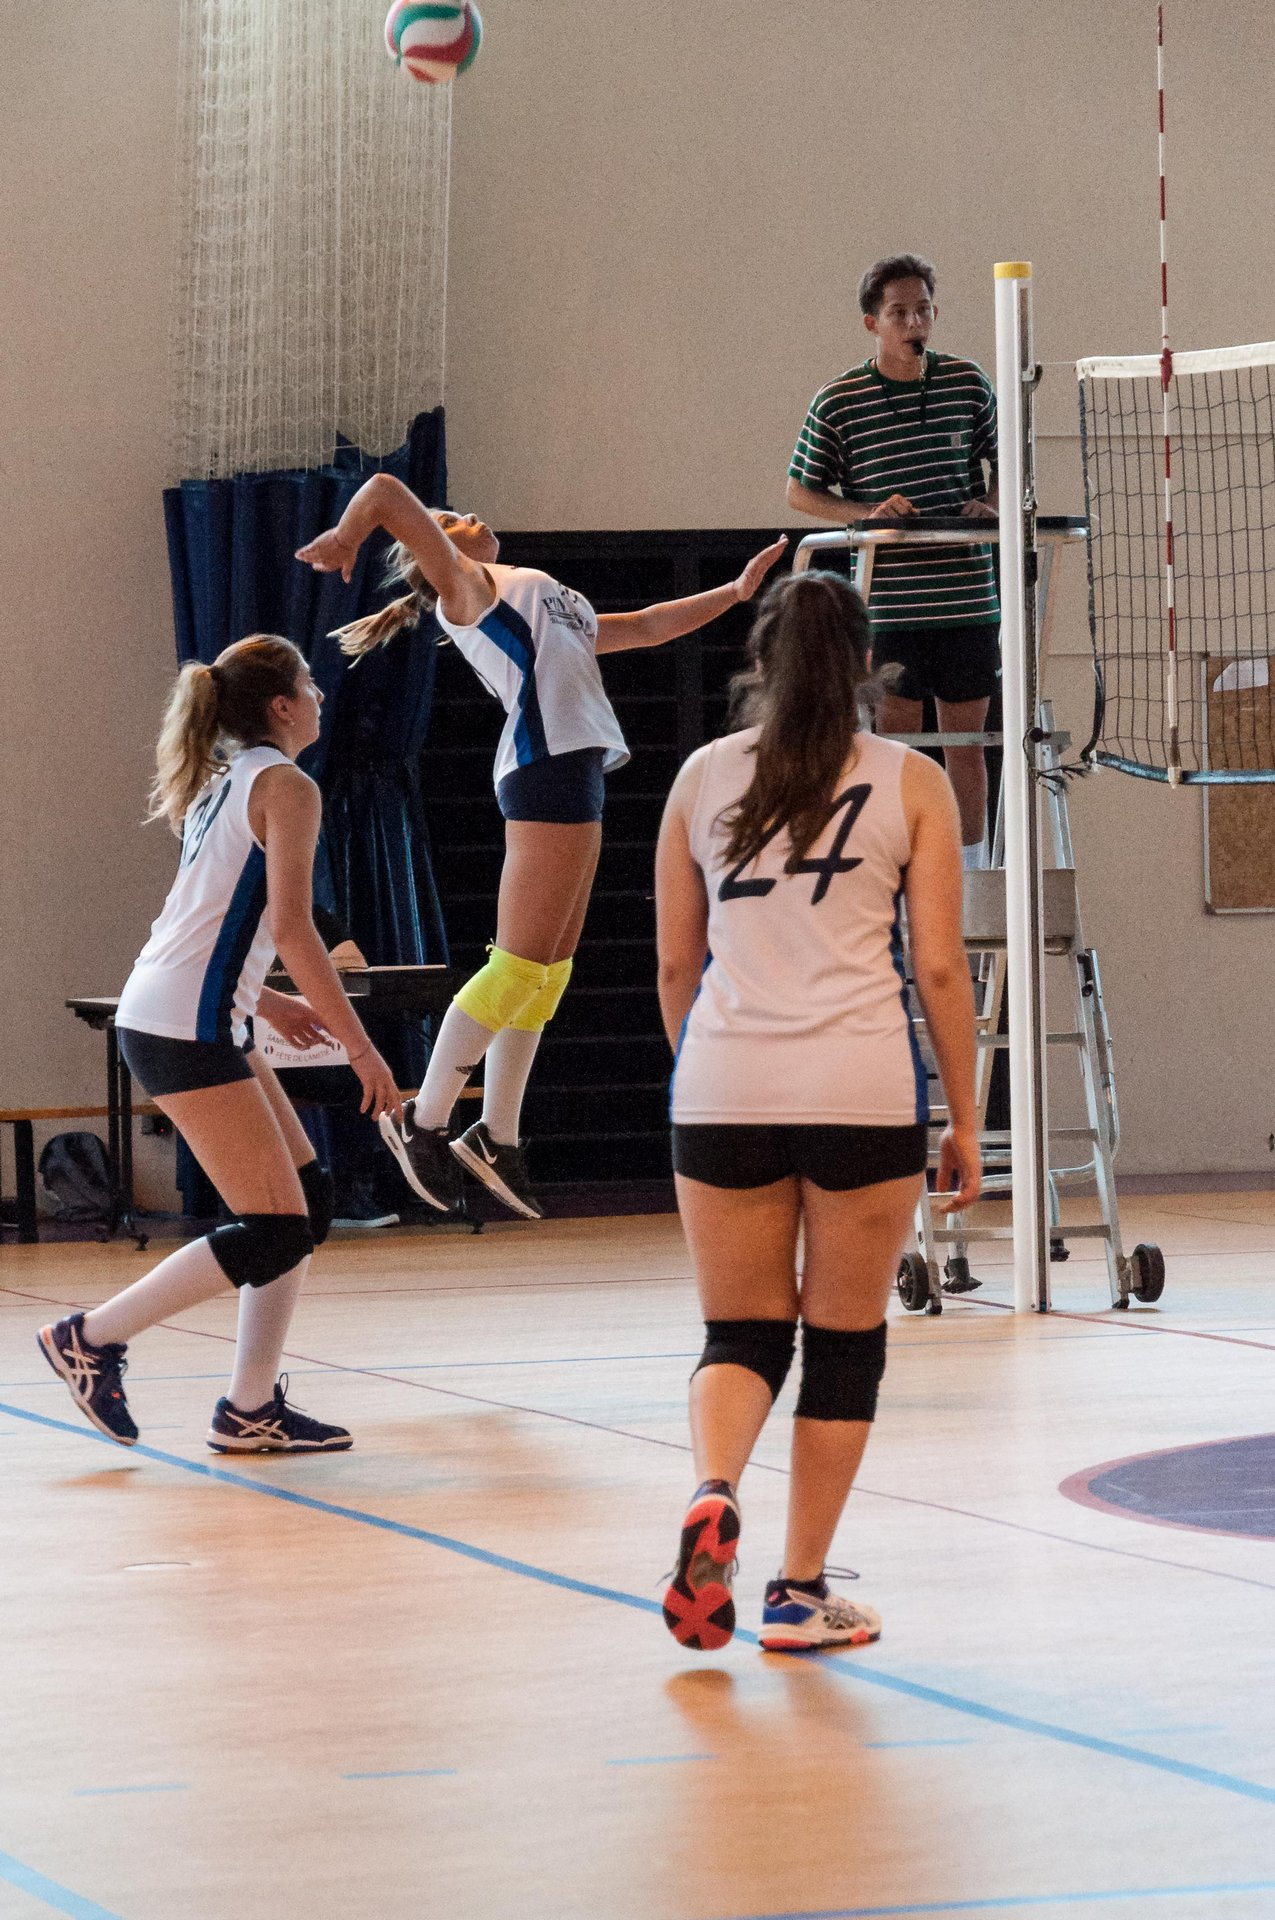 08_Volley_13_I. DURAND - 11